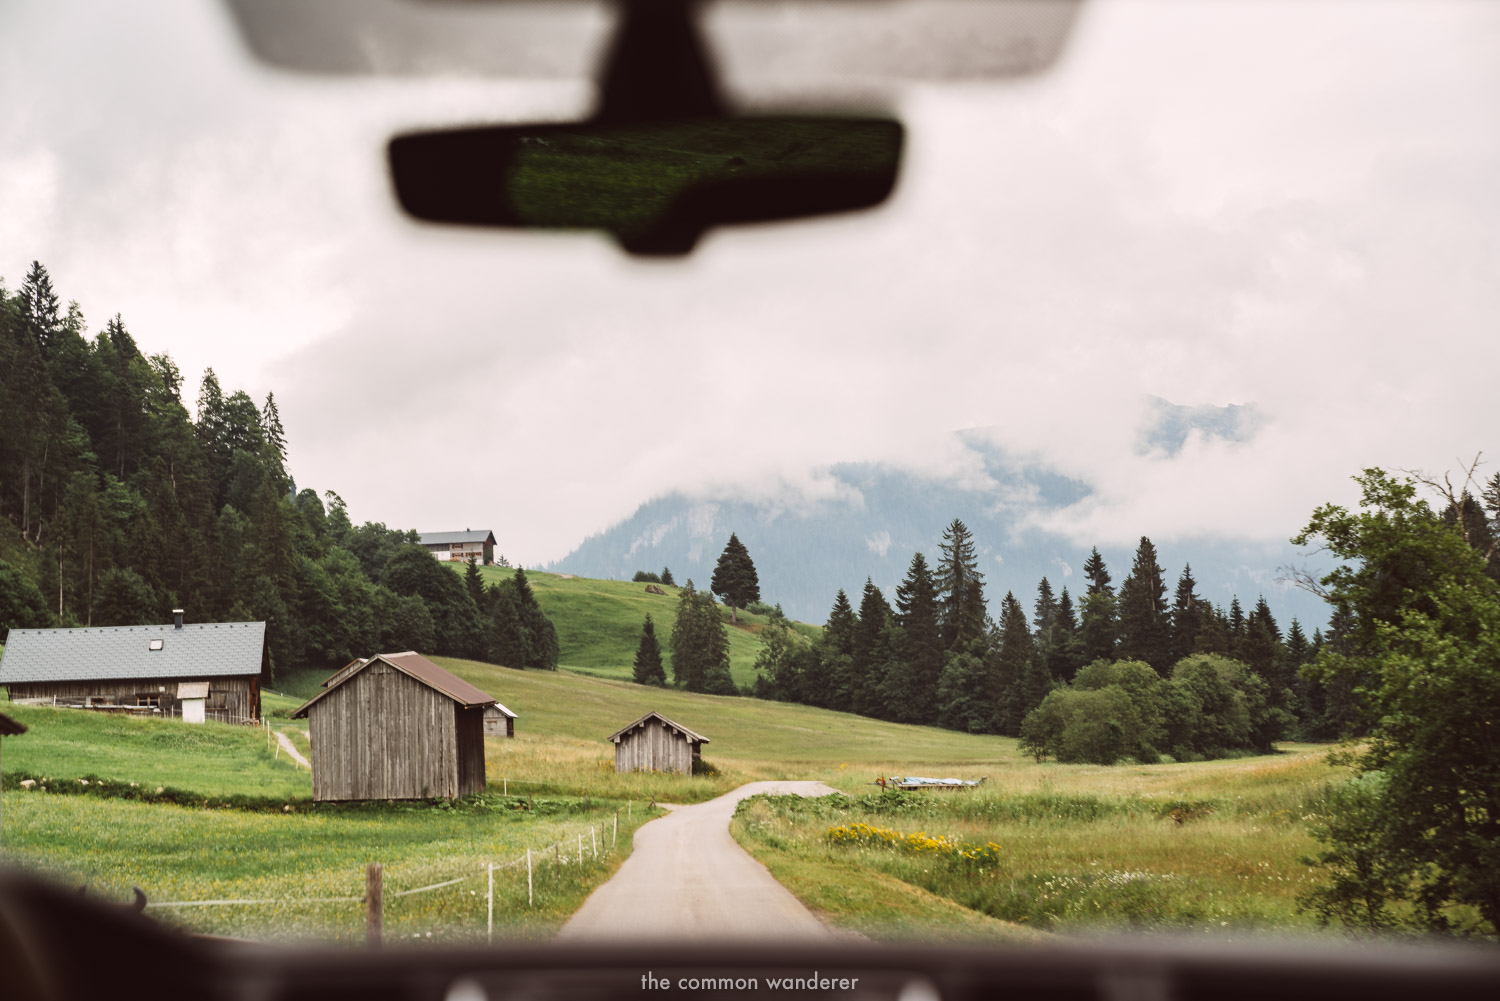 Driving through the countryside in Vorarlberg, Austria